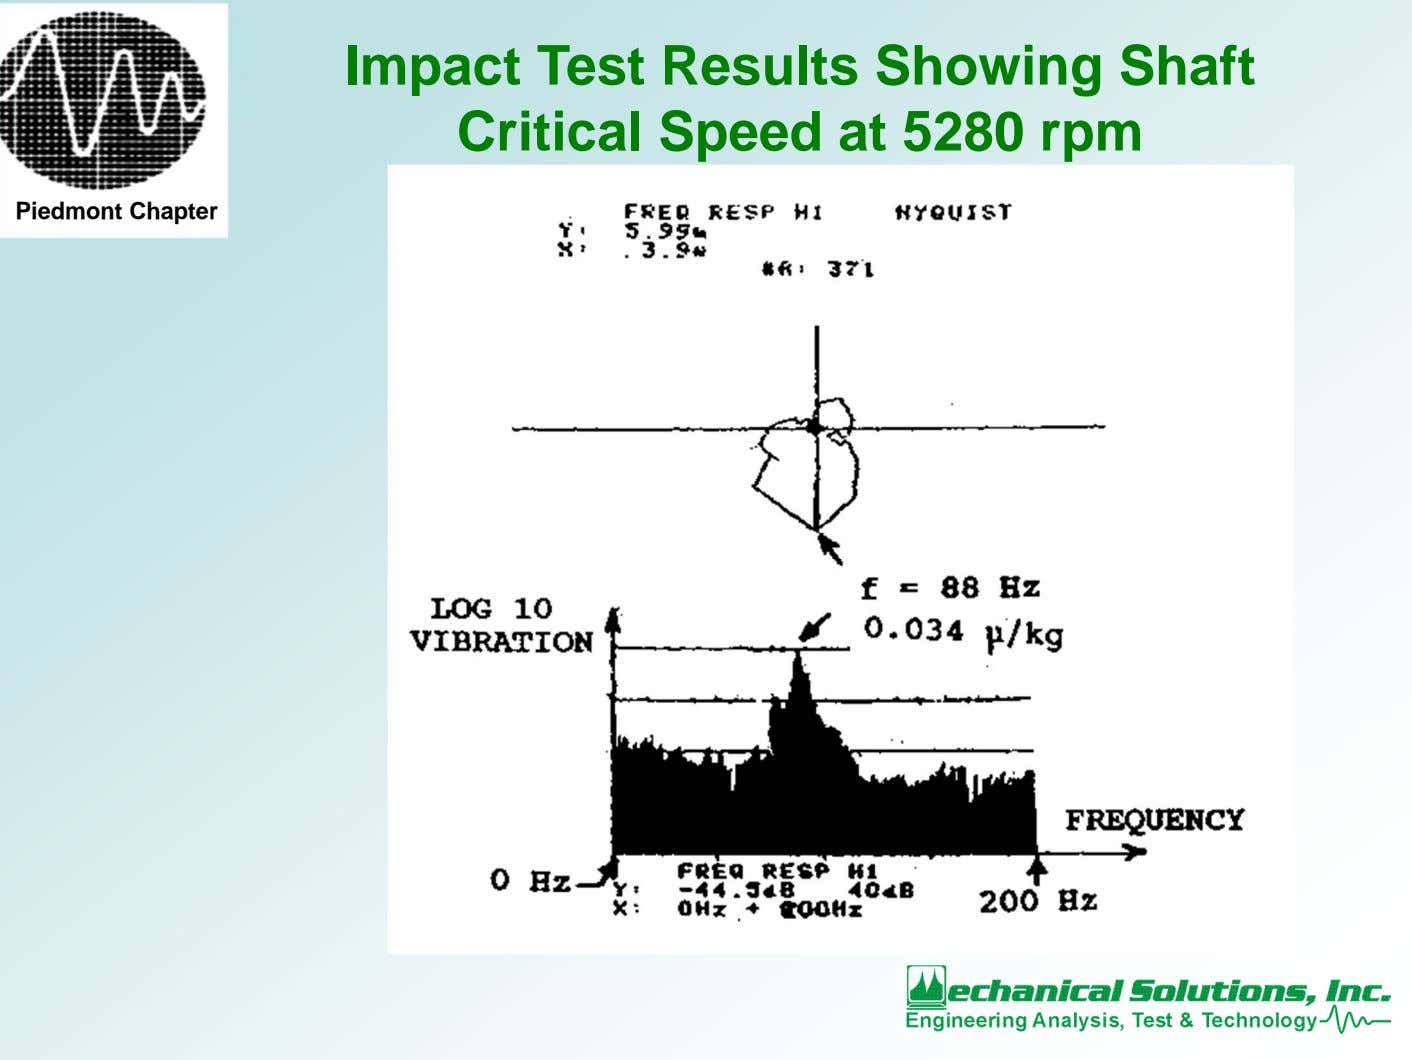 Impact Test Results Showing Shaft Critical Speed at 5280 rpm Piedmont Chapter